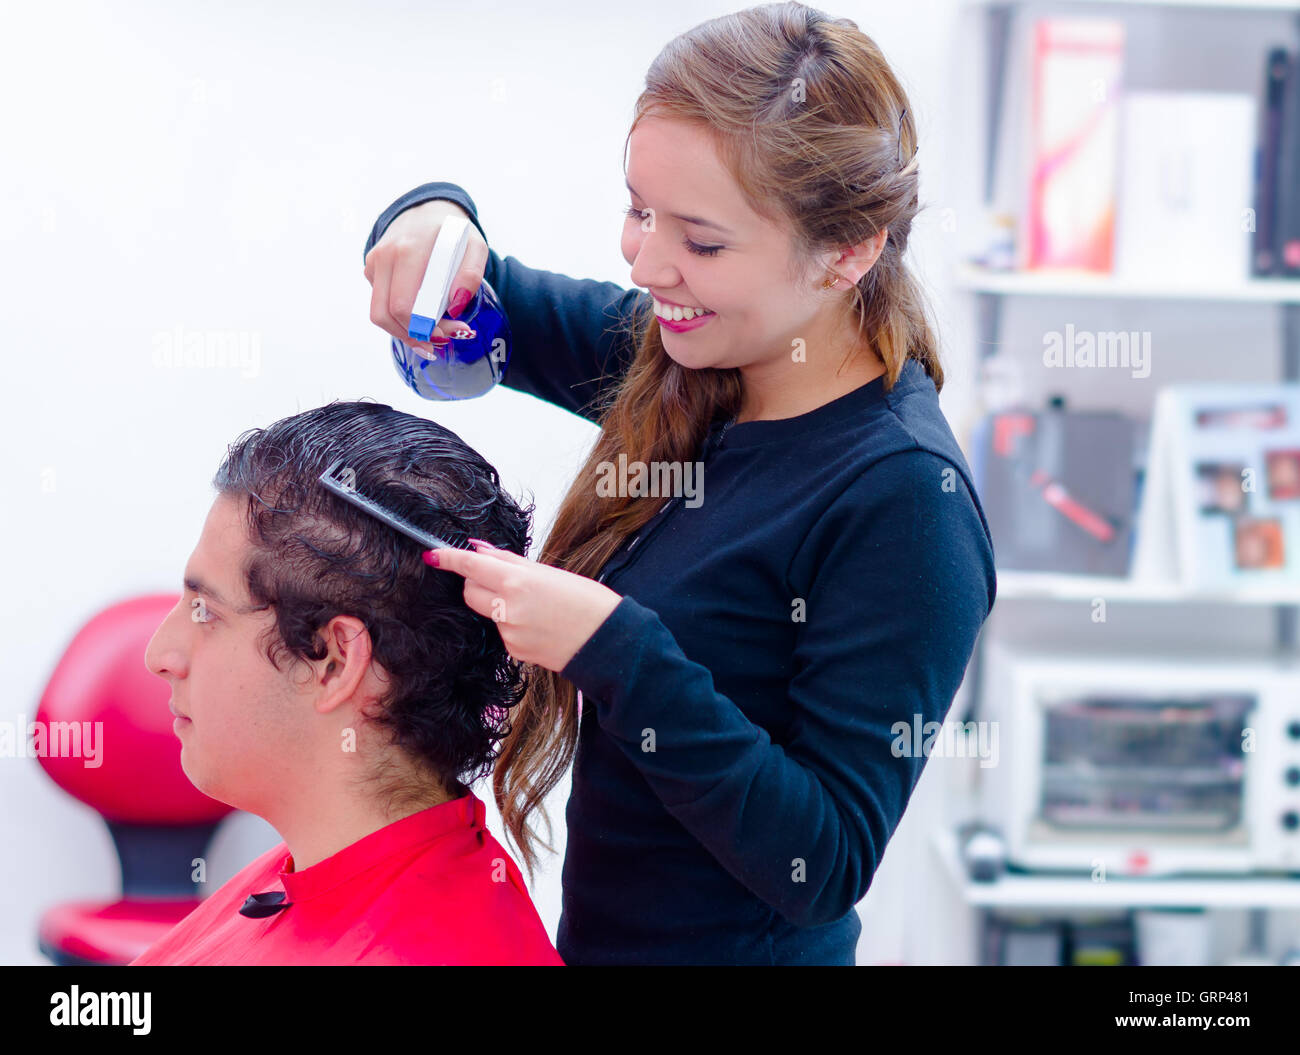 Spontaneus and smiling hairstylist is getting wet her next client, comb and spray on her hands Stock Photo